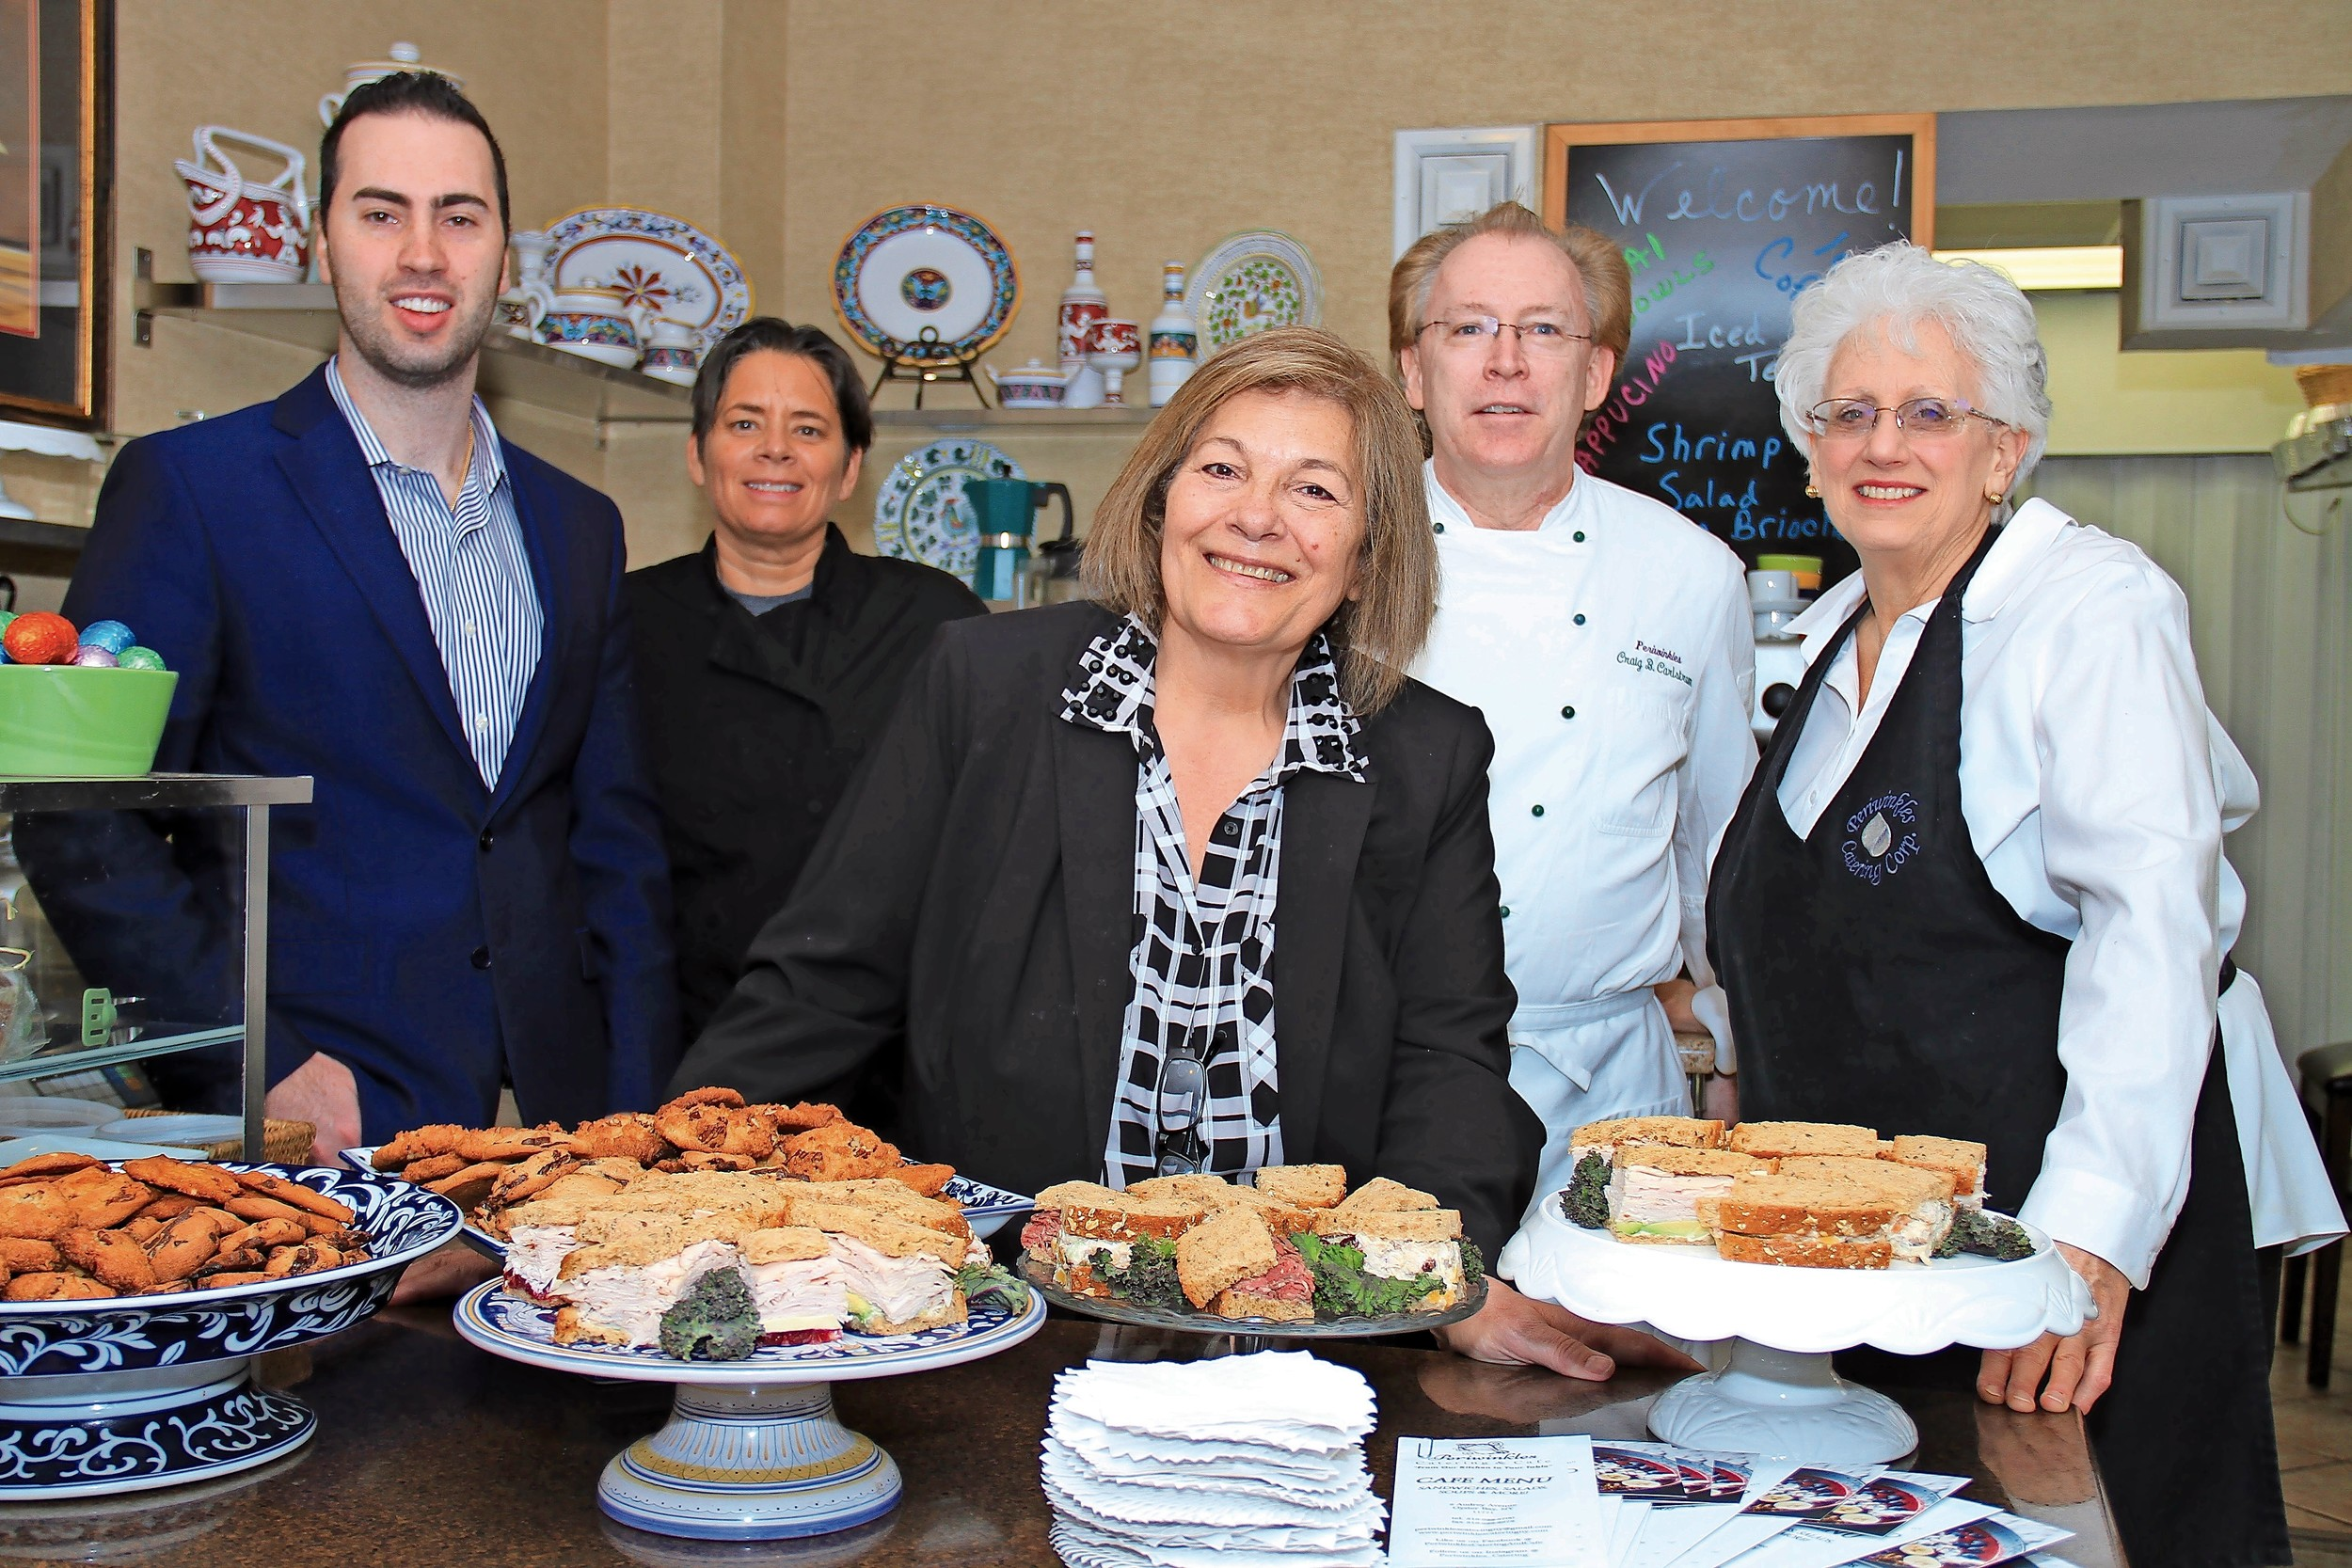 The owner of Periwinkles, Patrizia Spafford, center, with her staff at the grand reopening of the eatery.